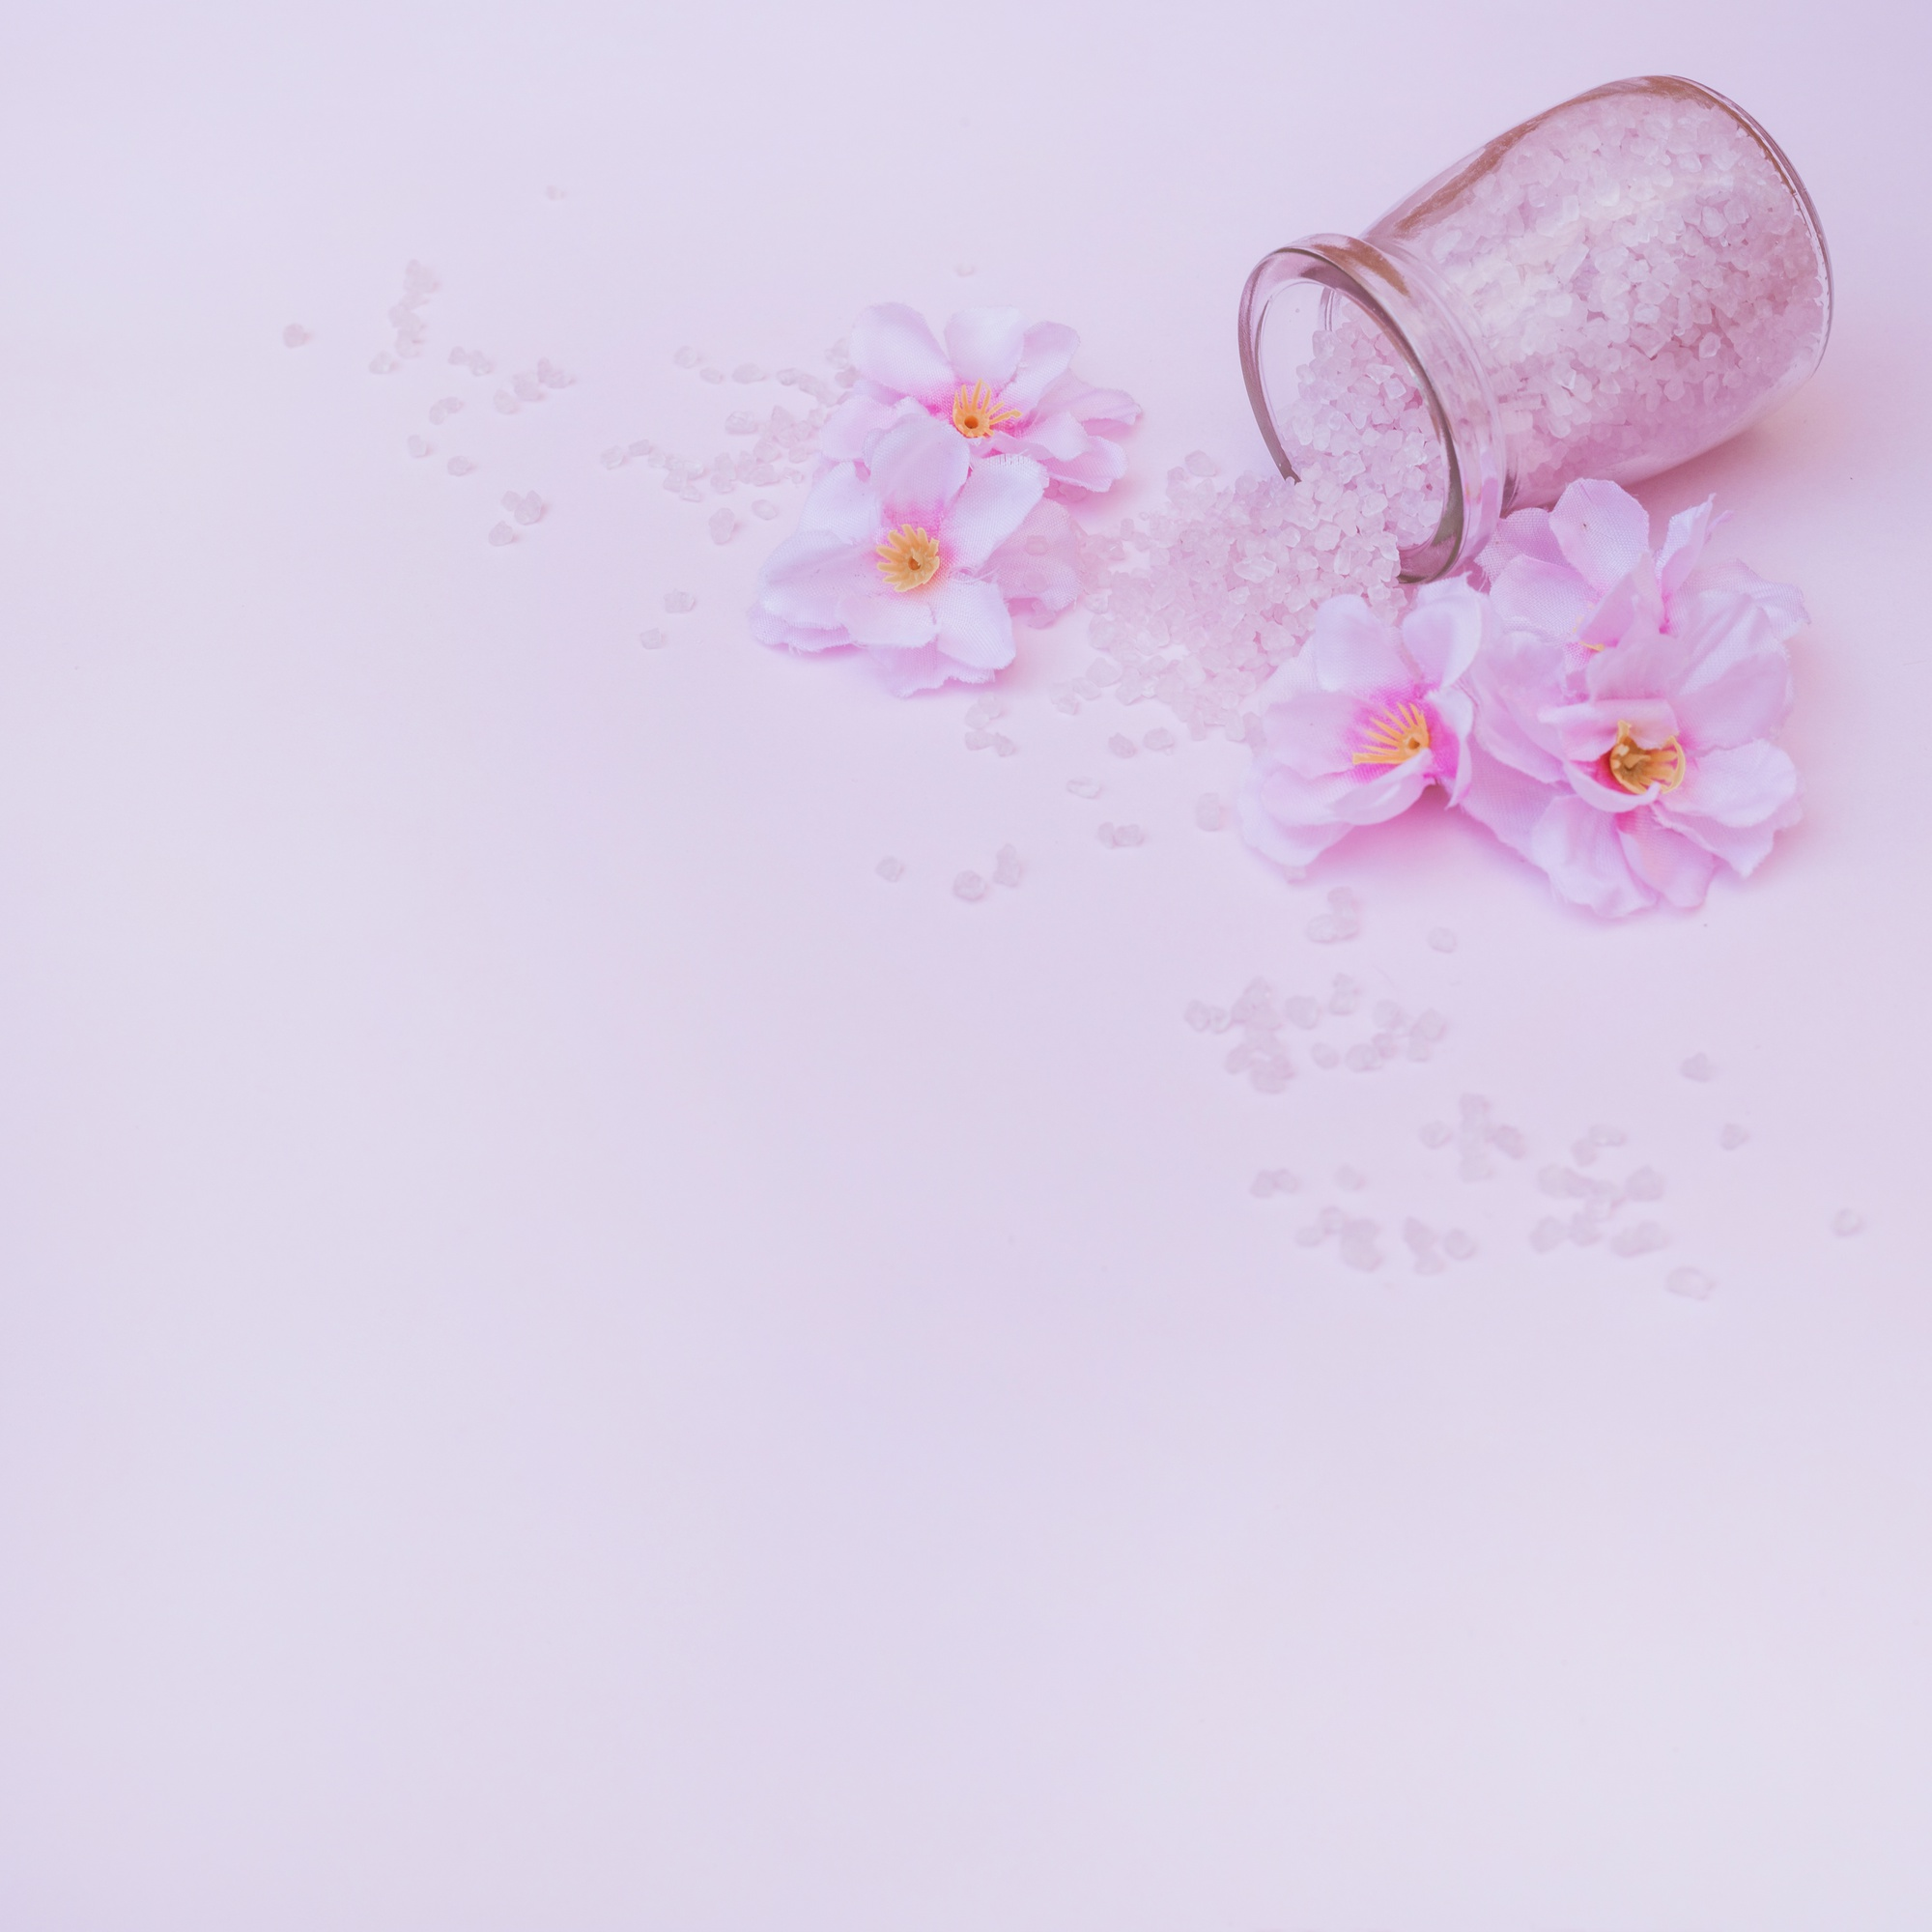 Artificial flowers and spilled salt from jar on pink background